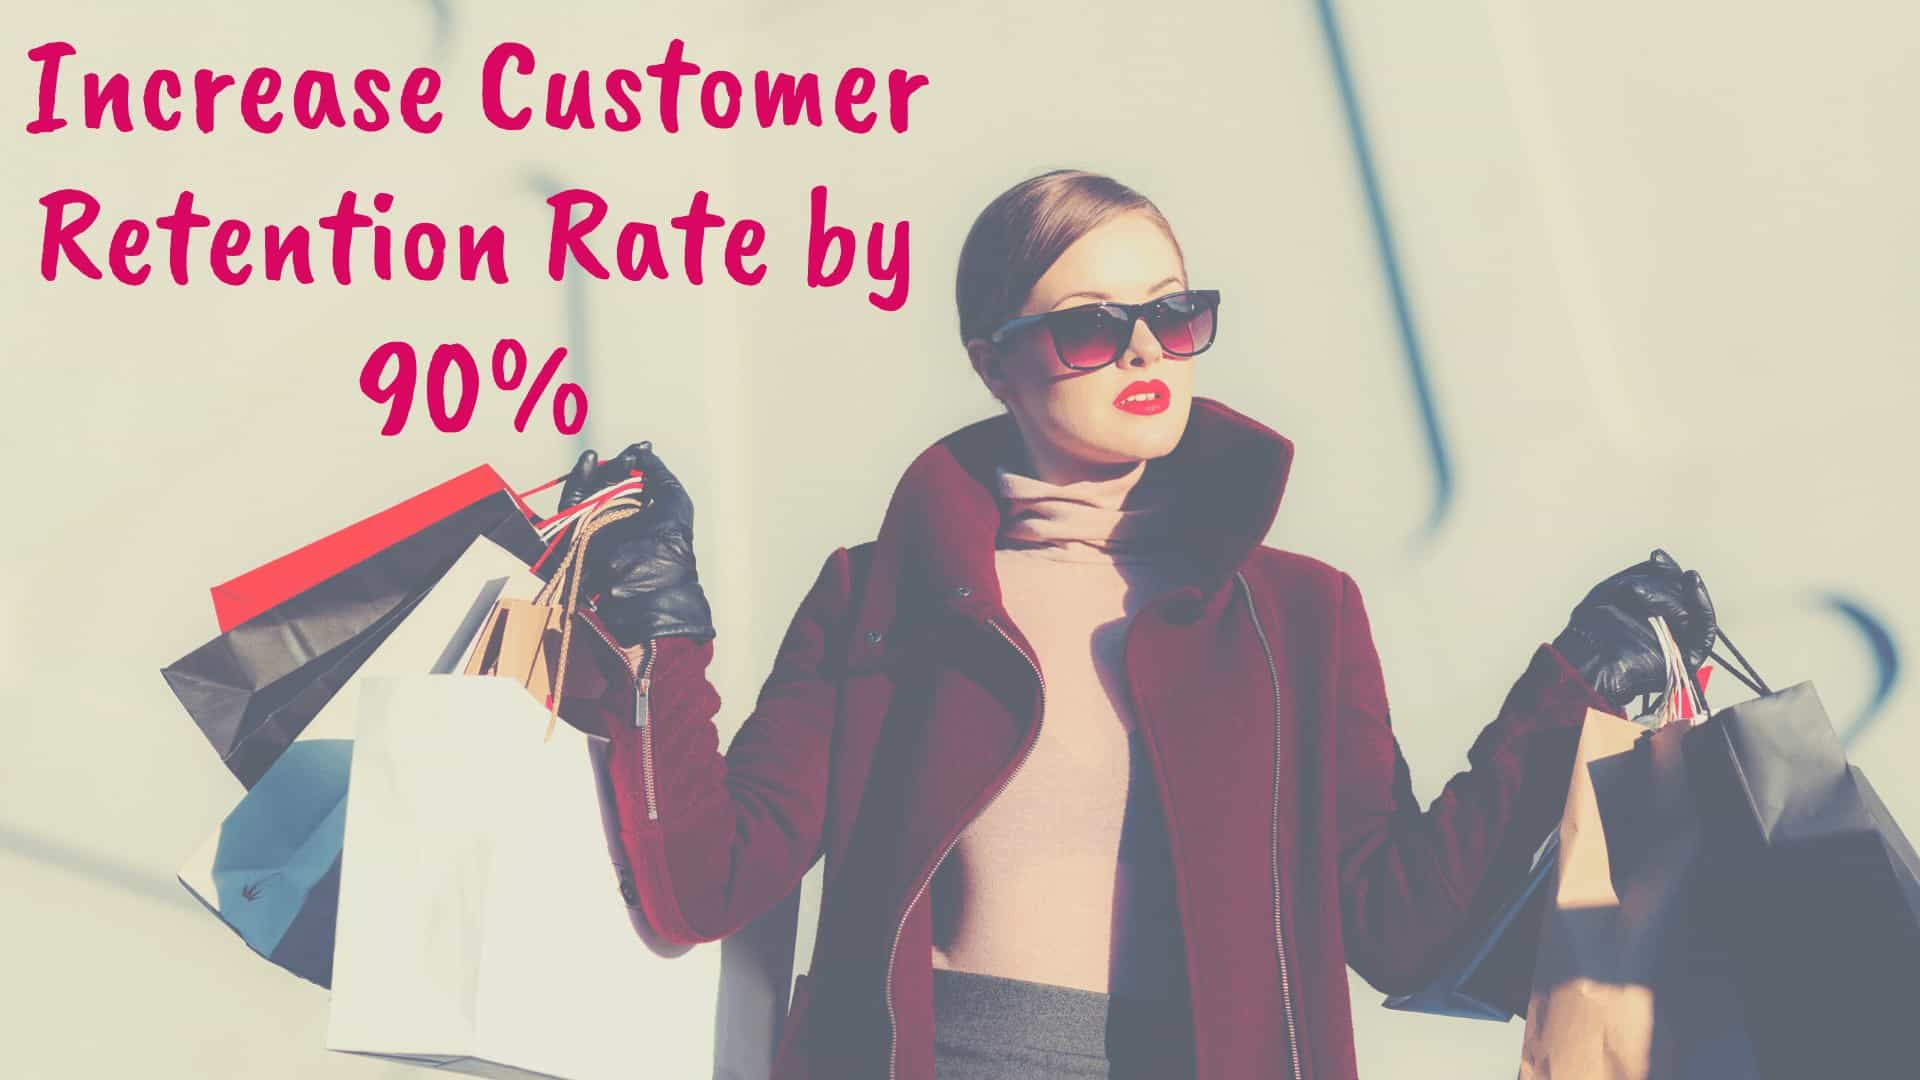 Increase Customer Retention Rate by 90% - Blog